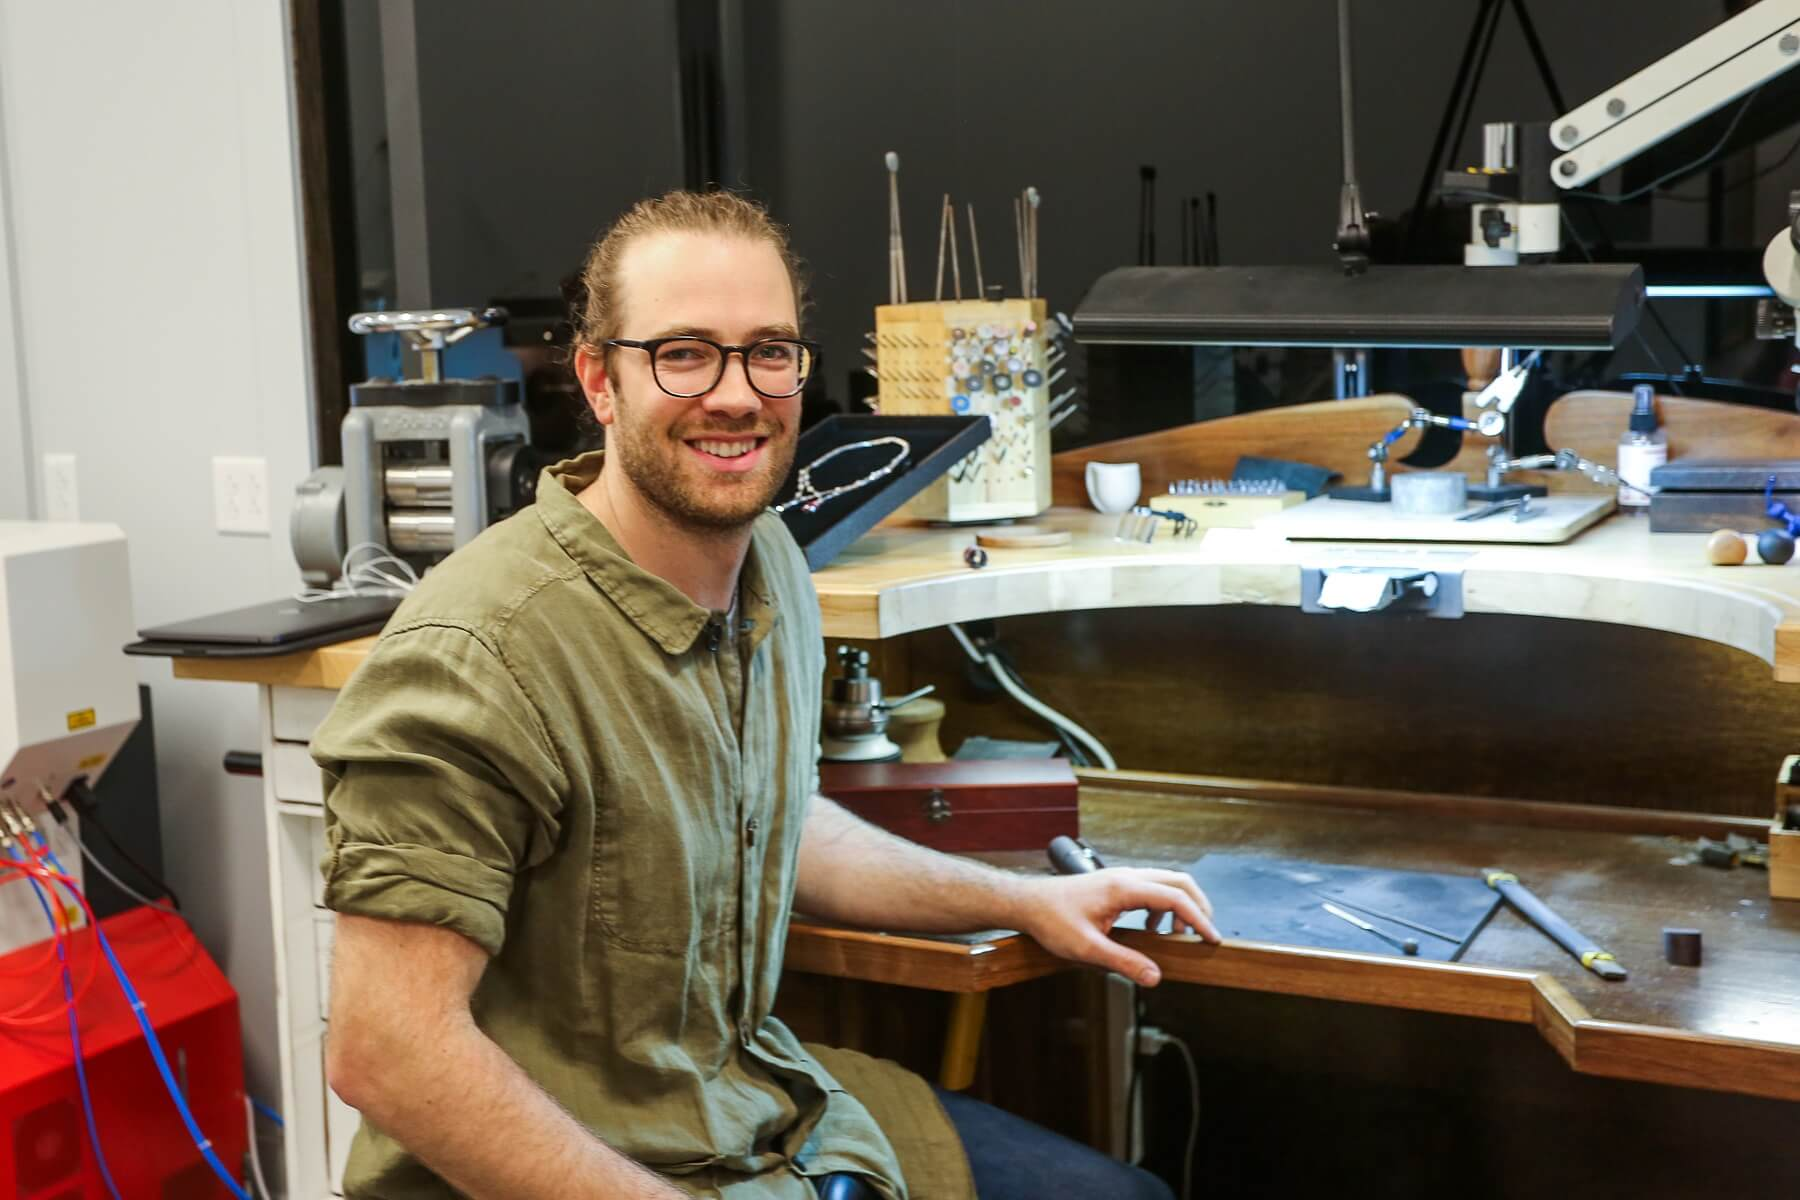 Tim Stammen is E.J. Sain's in-house jewelry designer. He can create pieces from scratch, or bring him your ideas and he will bring them to life!